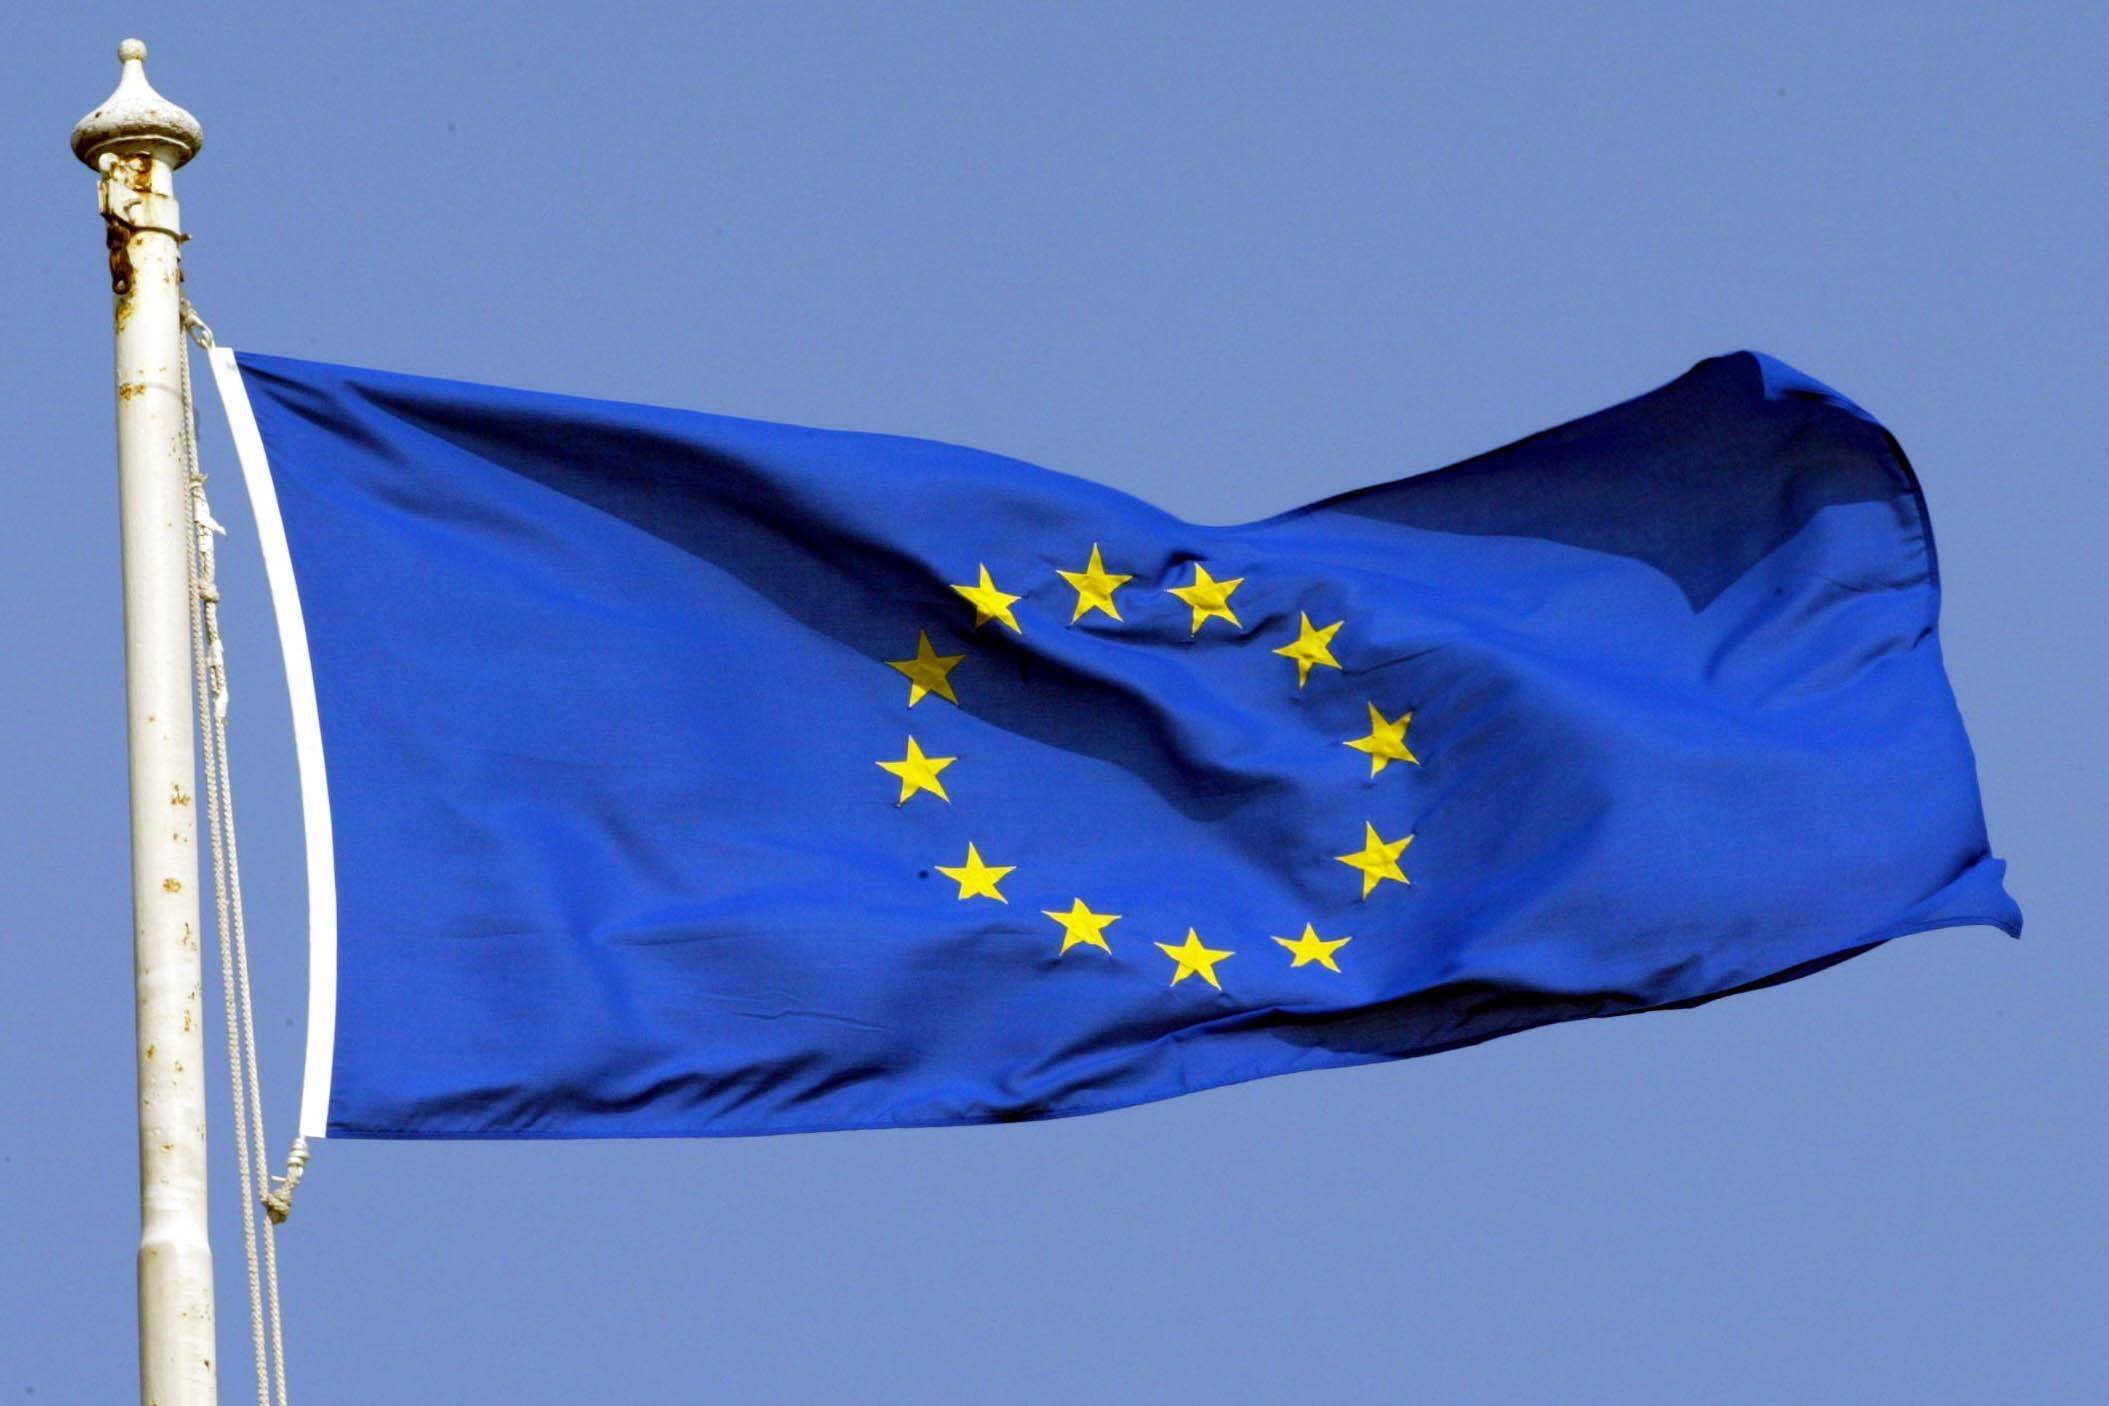 The EU flag